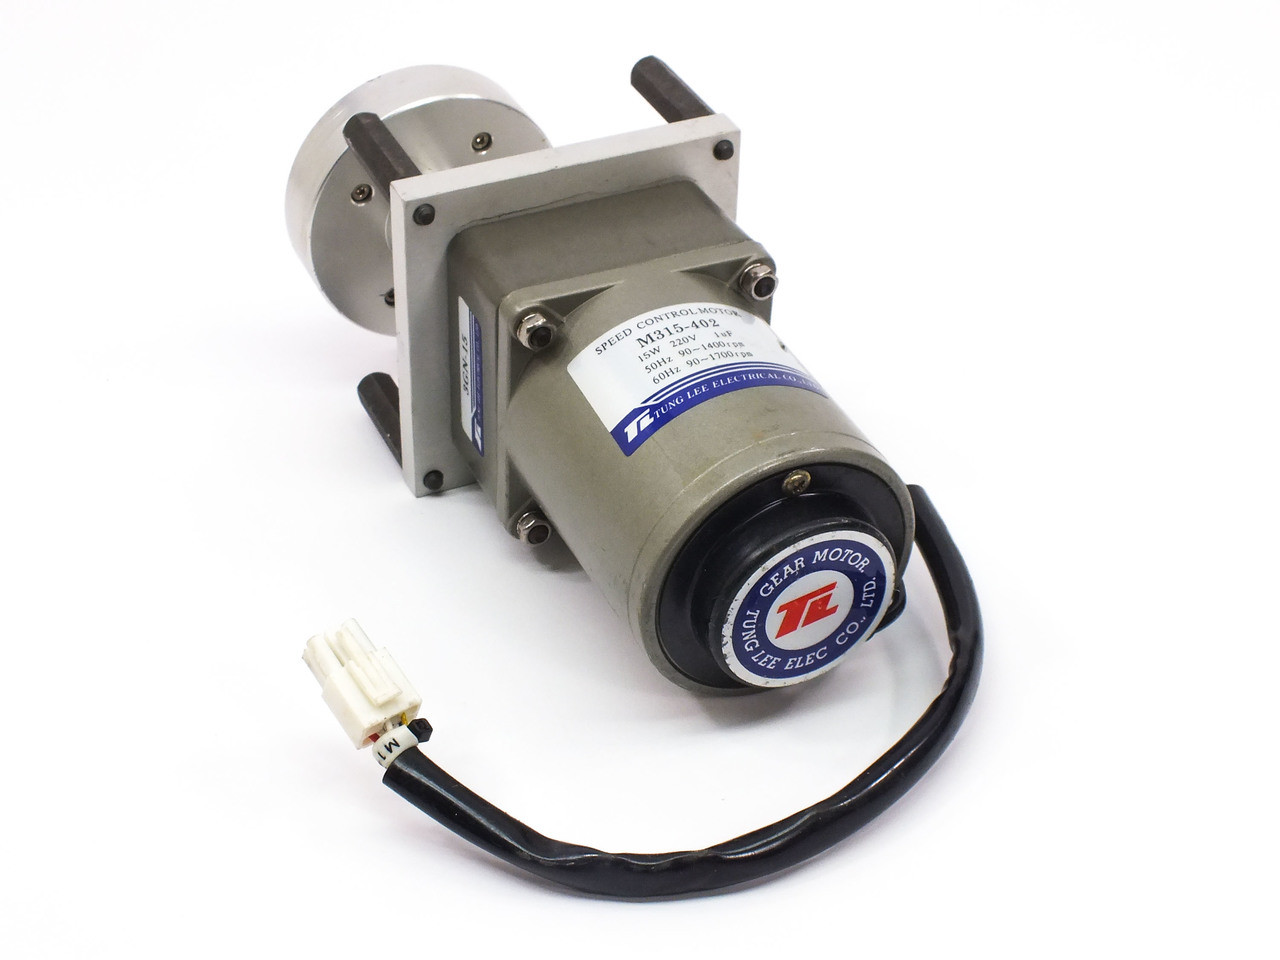 Tung lee electrical m315 402 variable speed ac motor for How to make a variable speed motor